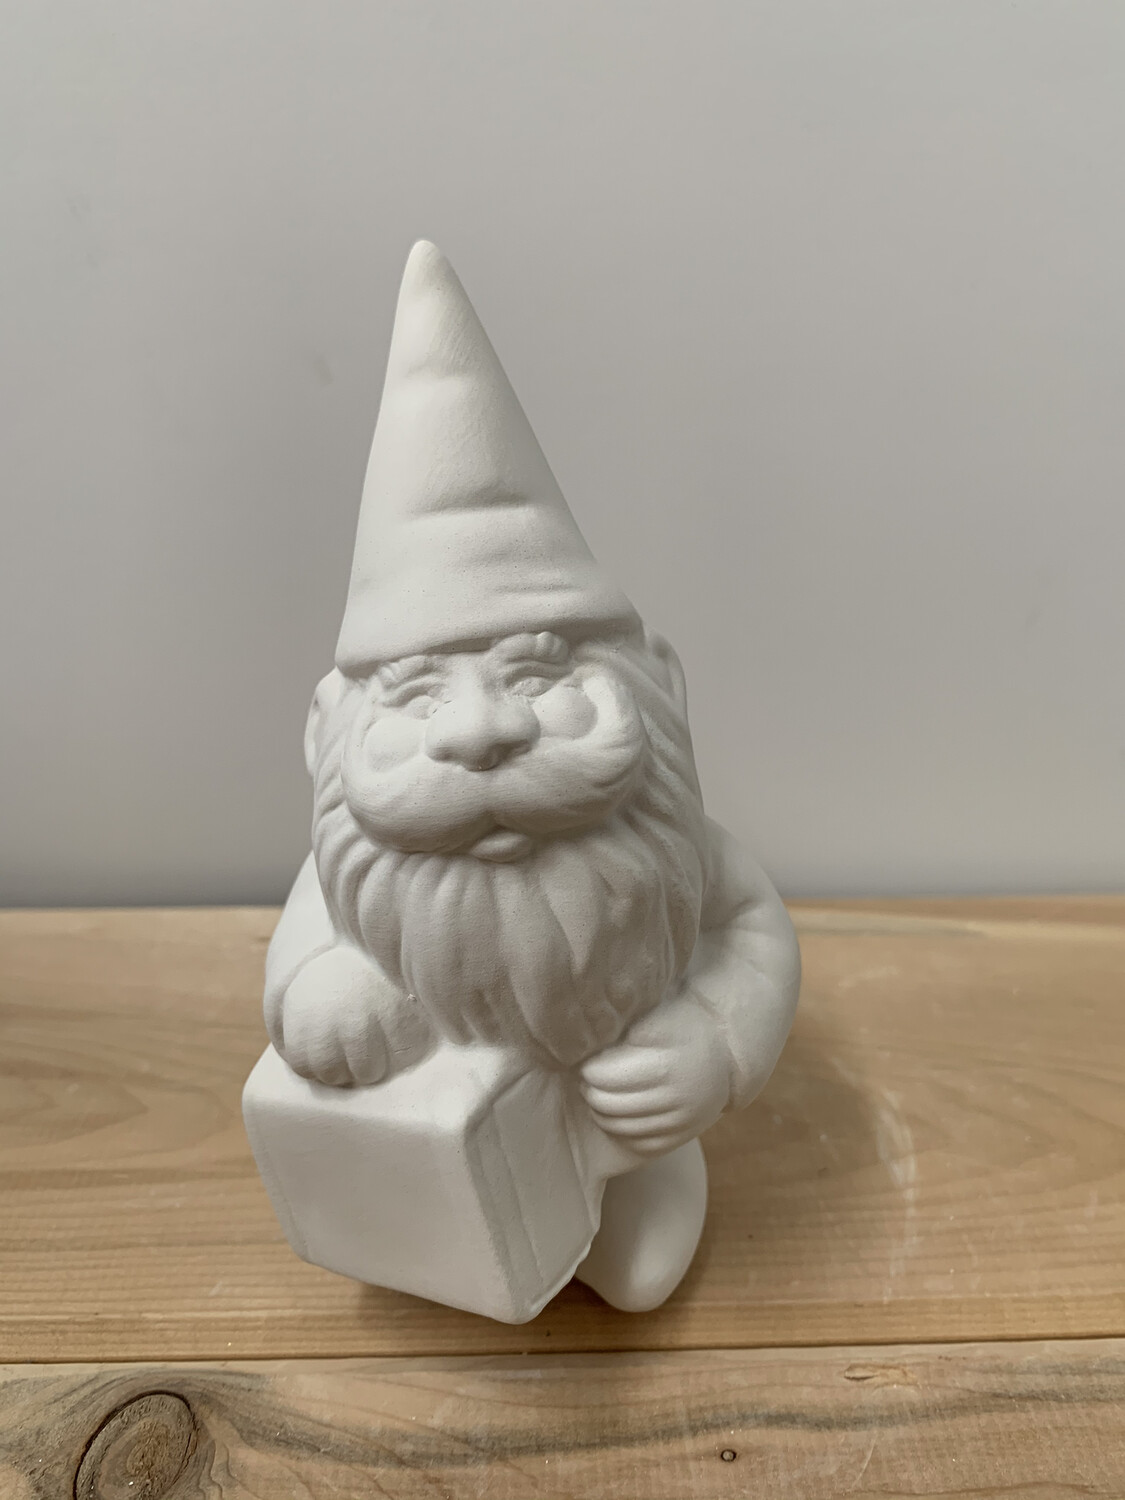 NO FIRE Paint Your Own Pottery Kit -  Ceramic Gnome Figurine Acrylic Painting Kit